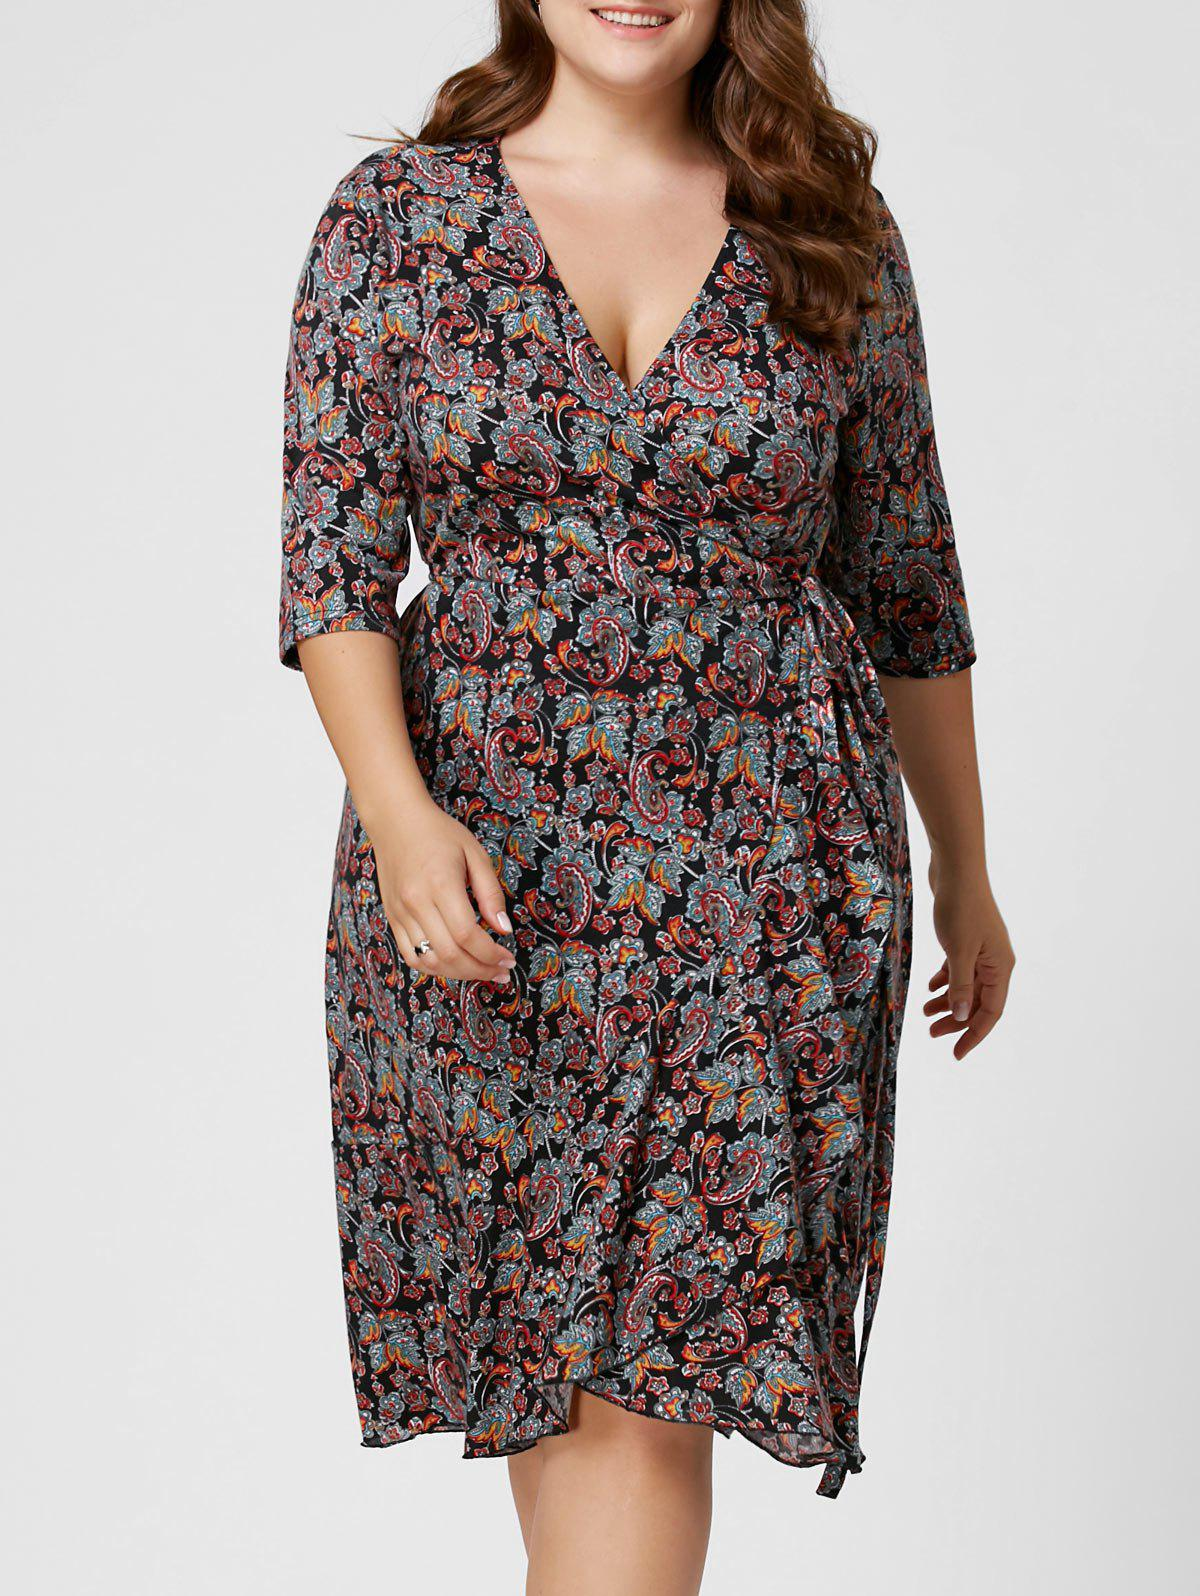 2018 Plus Size Overlap Paisley Dress Colormix Xl In Plus Size